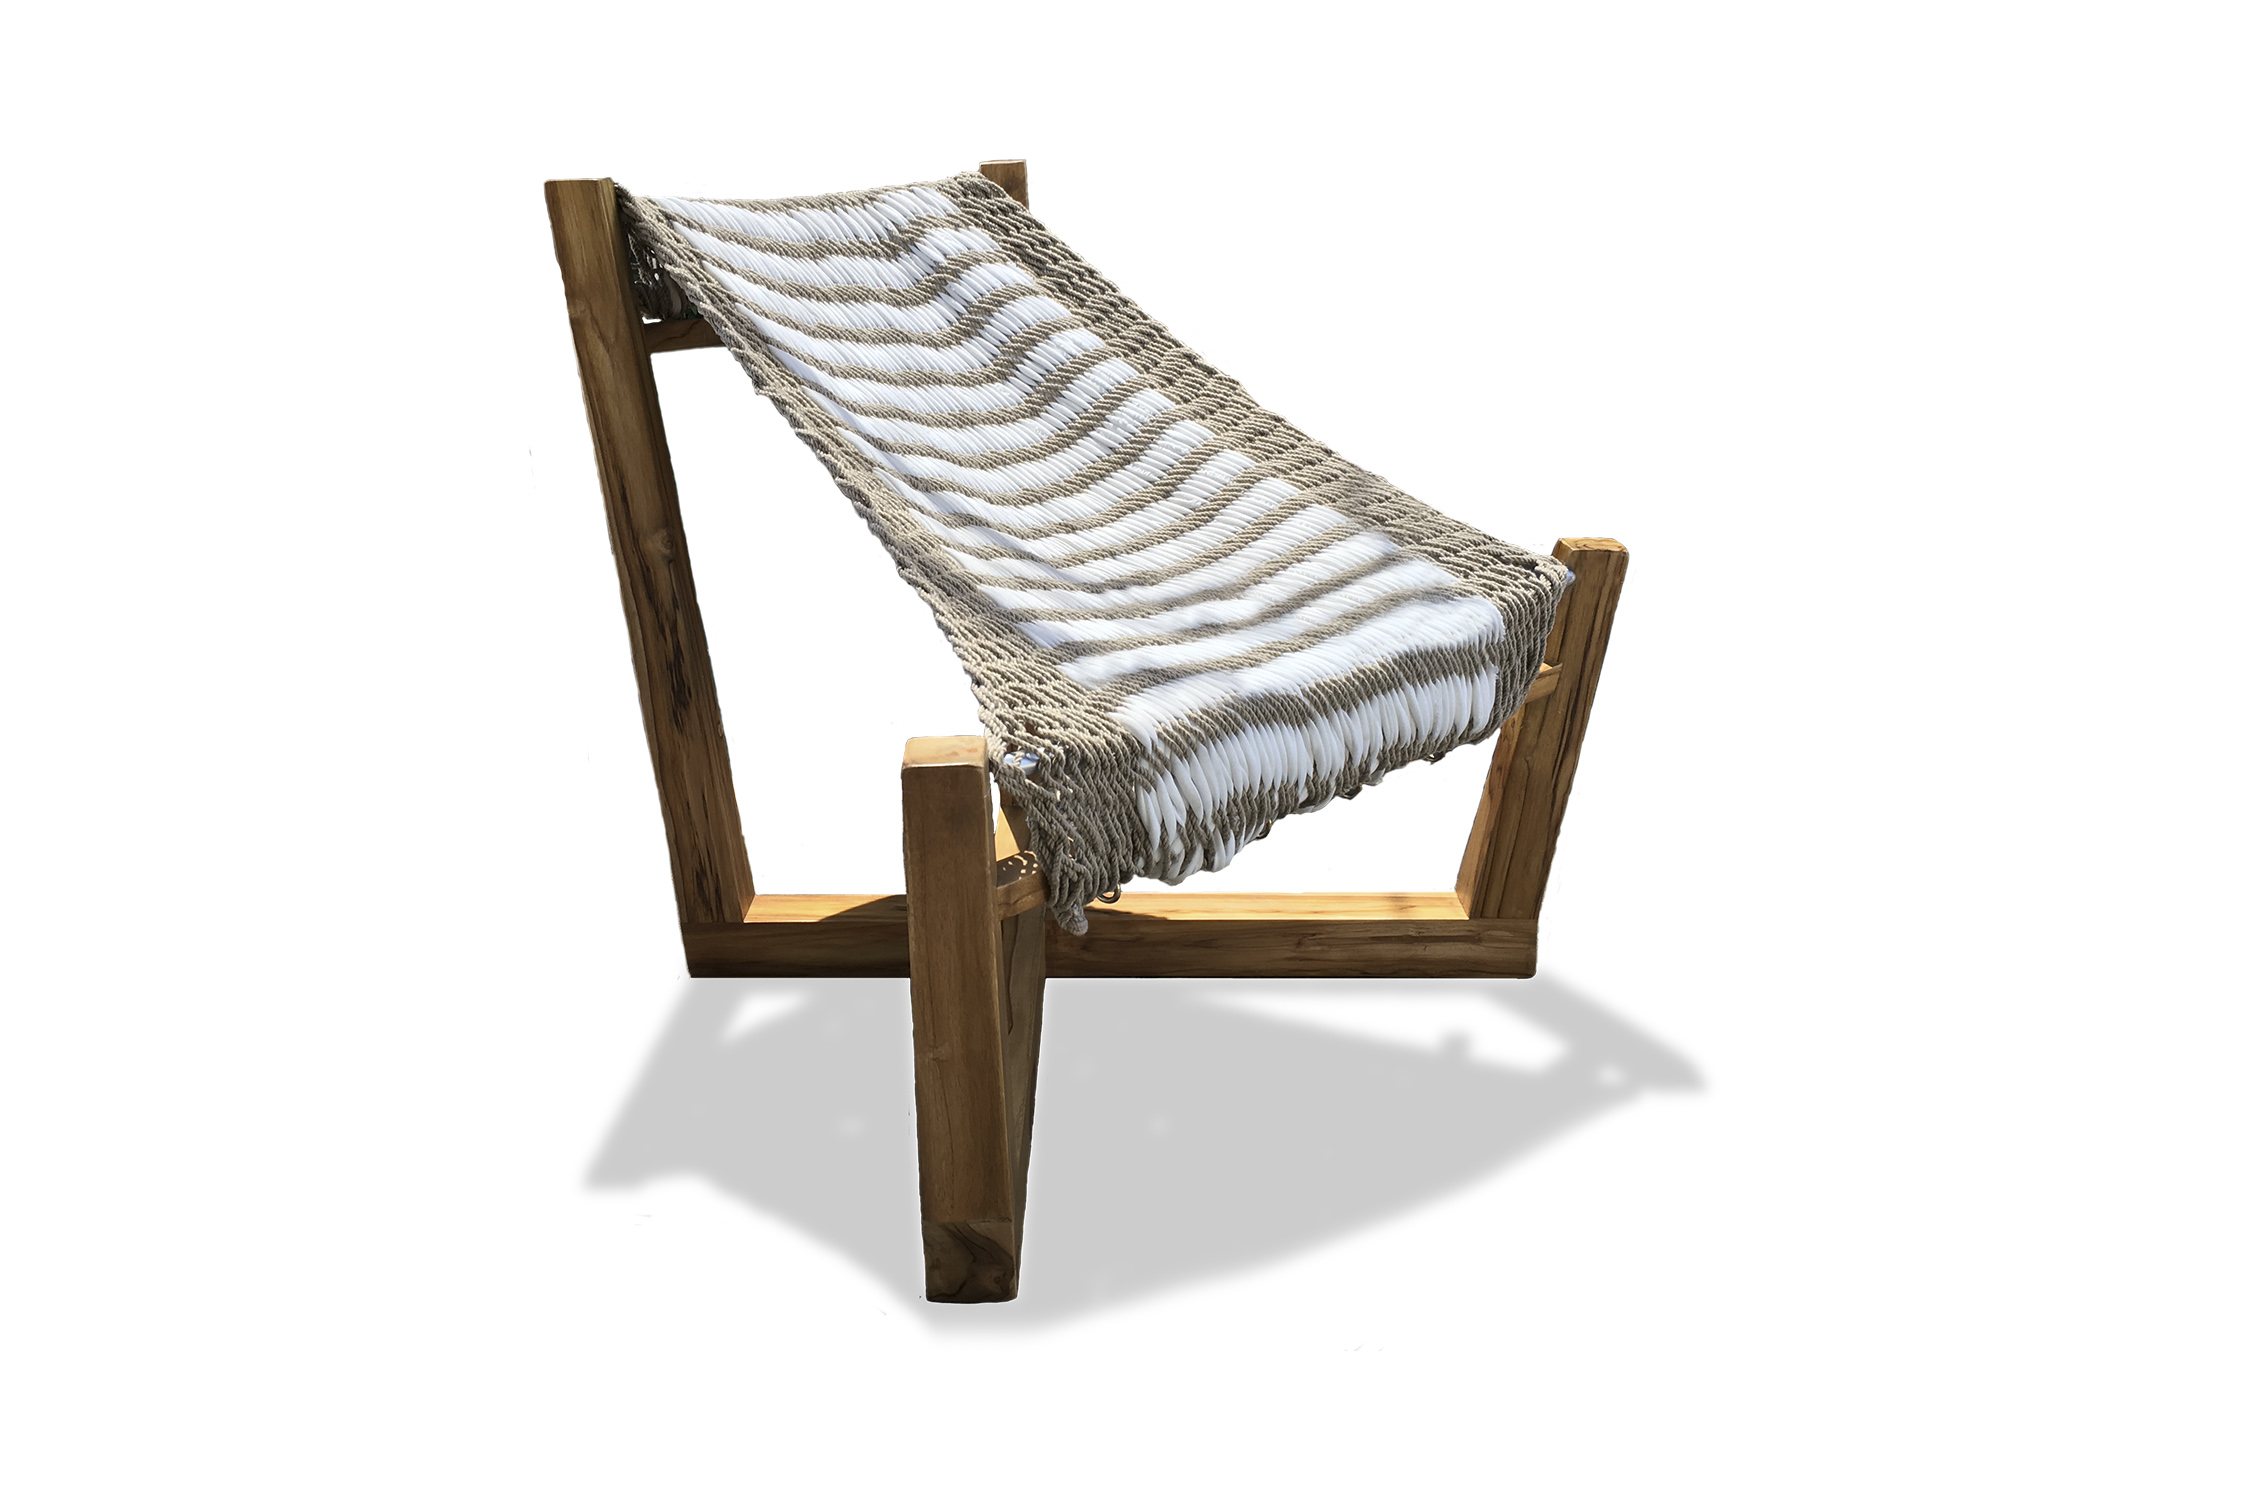 Chair with traditional hammock fabric.